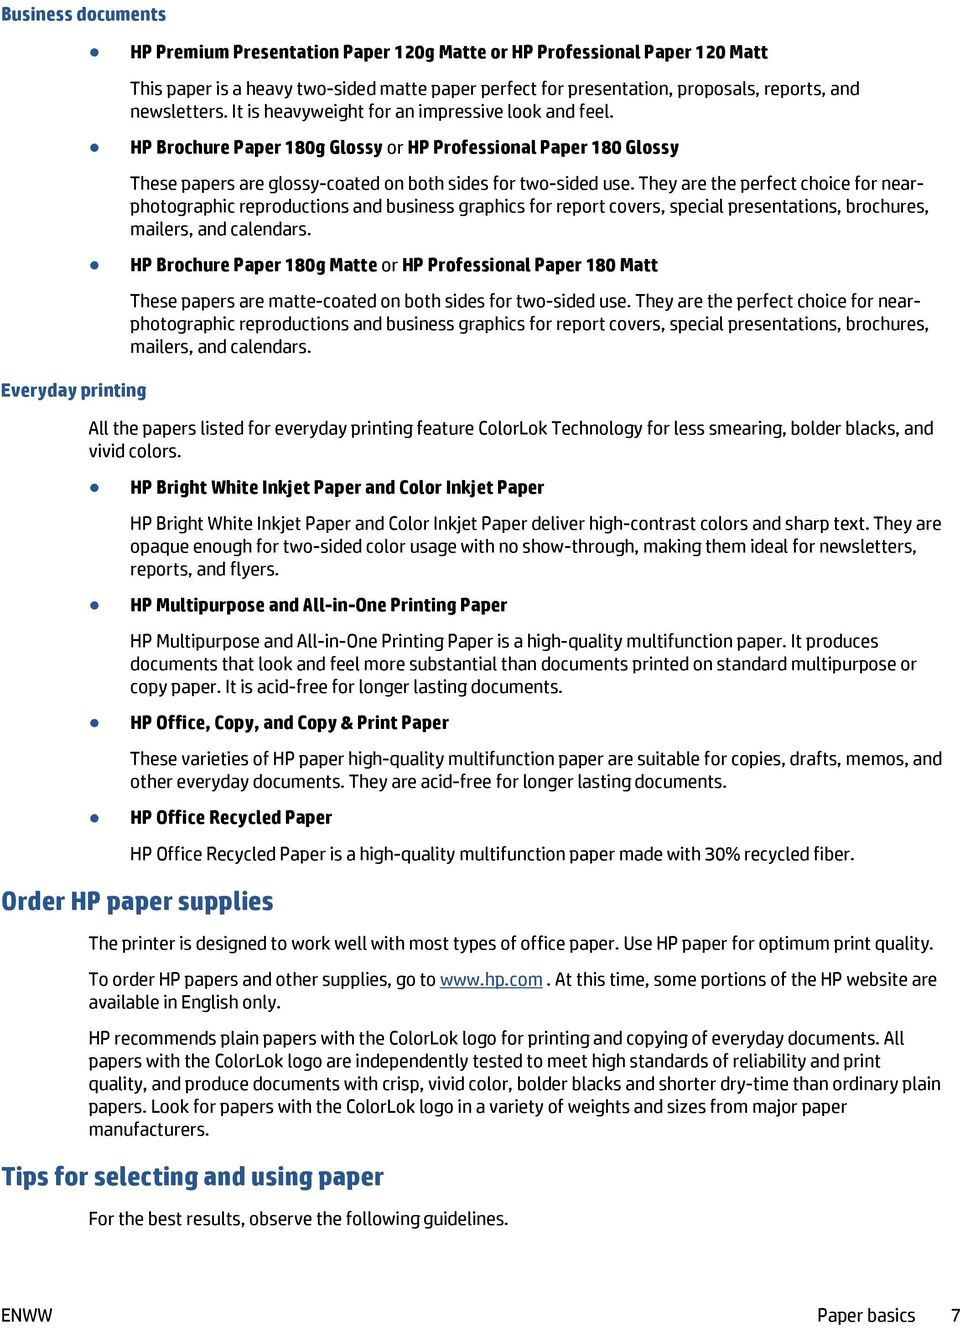 HP ENVY 4520 All-in-One series - PDF